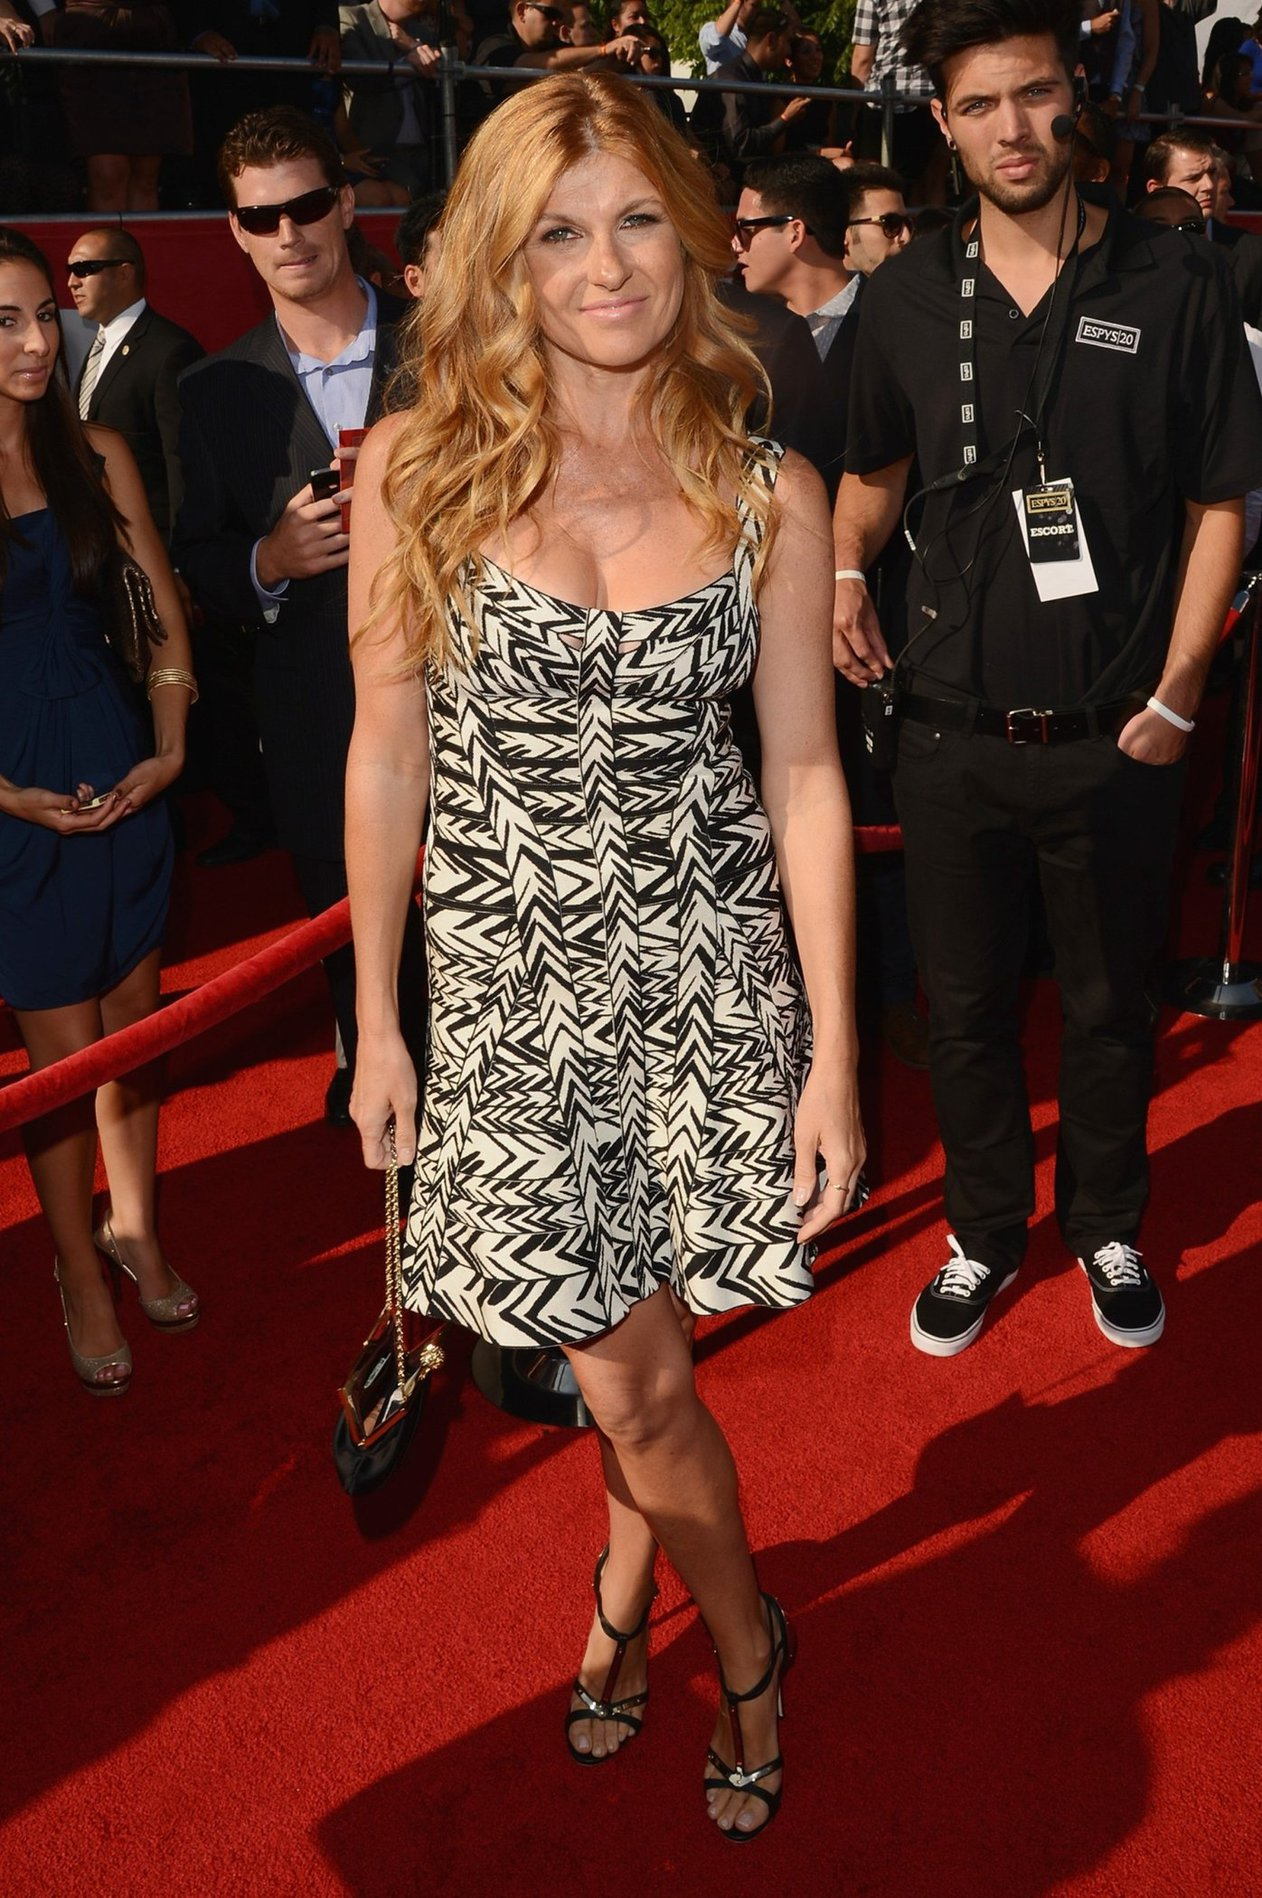 Connie Britton arrives at the 2012 ESPY Awards at Nokia Theatre L.A. Live on July 11, 2012 in Los Angeles, California.